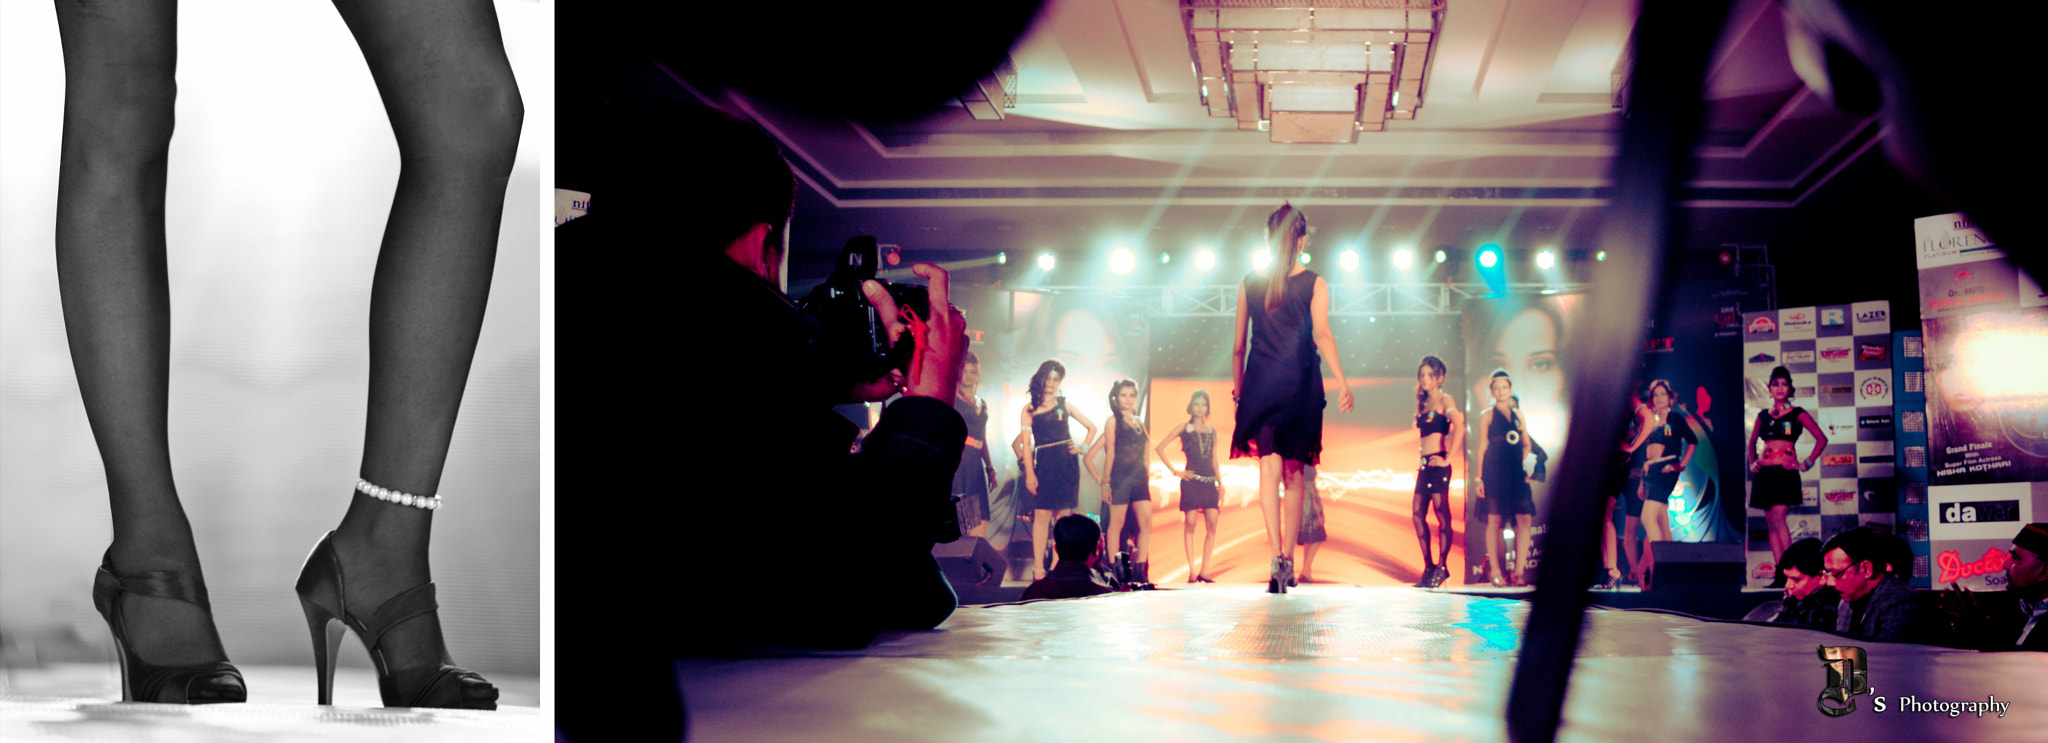 Photograph Fashion week by Divyam Mehrotra on 500px